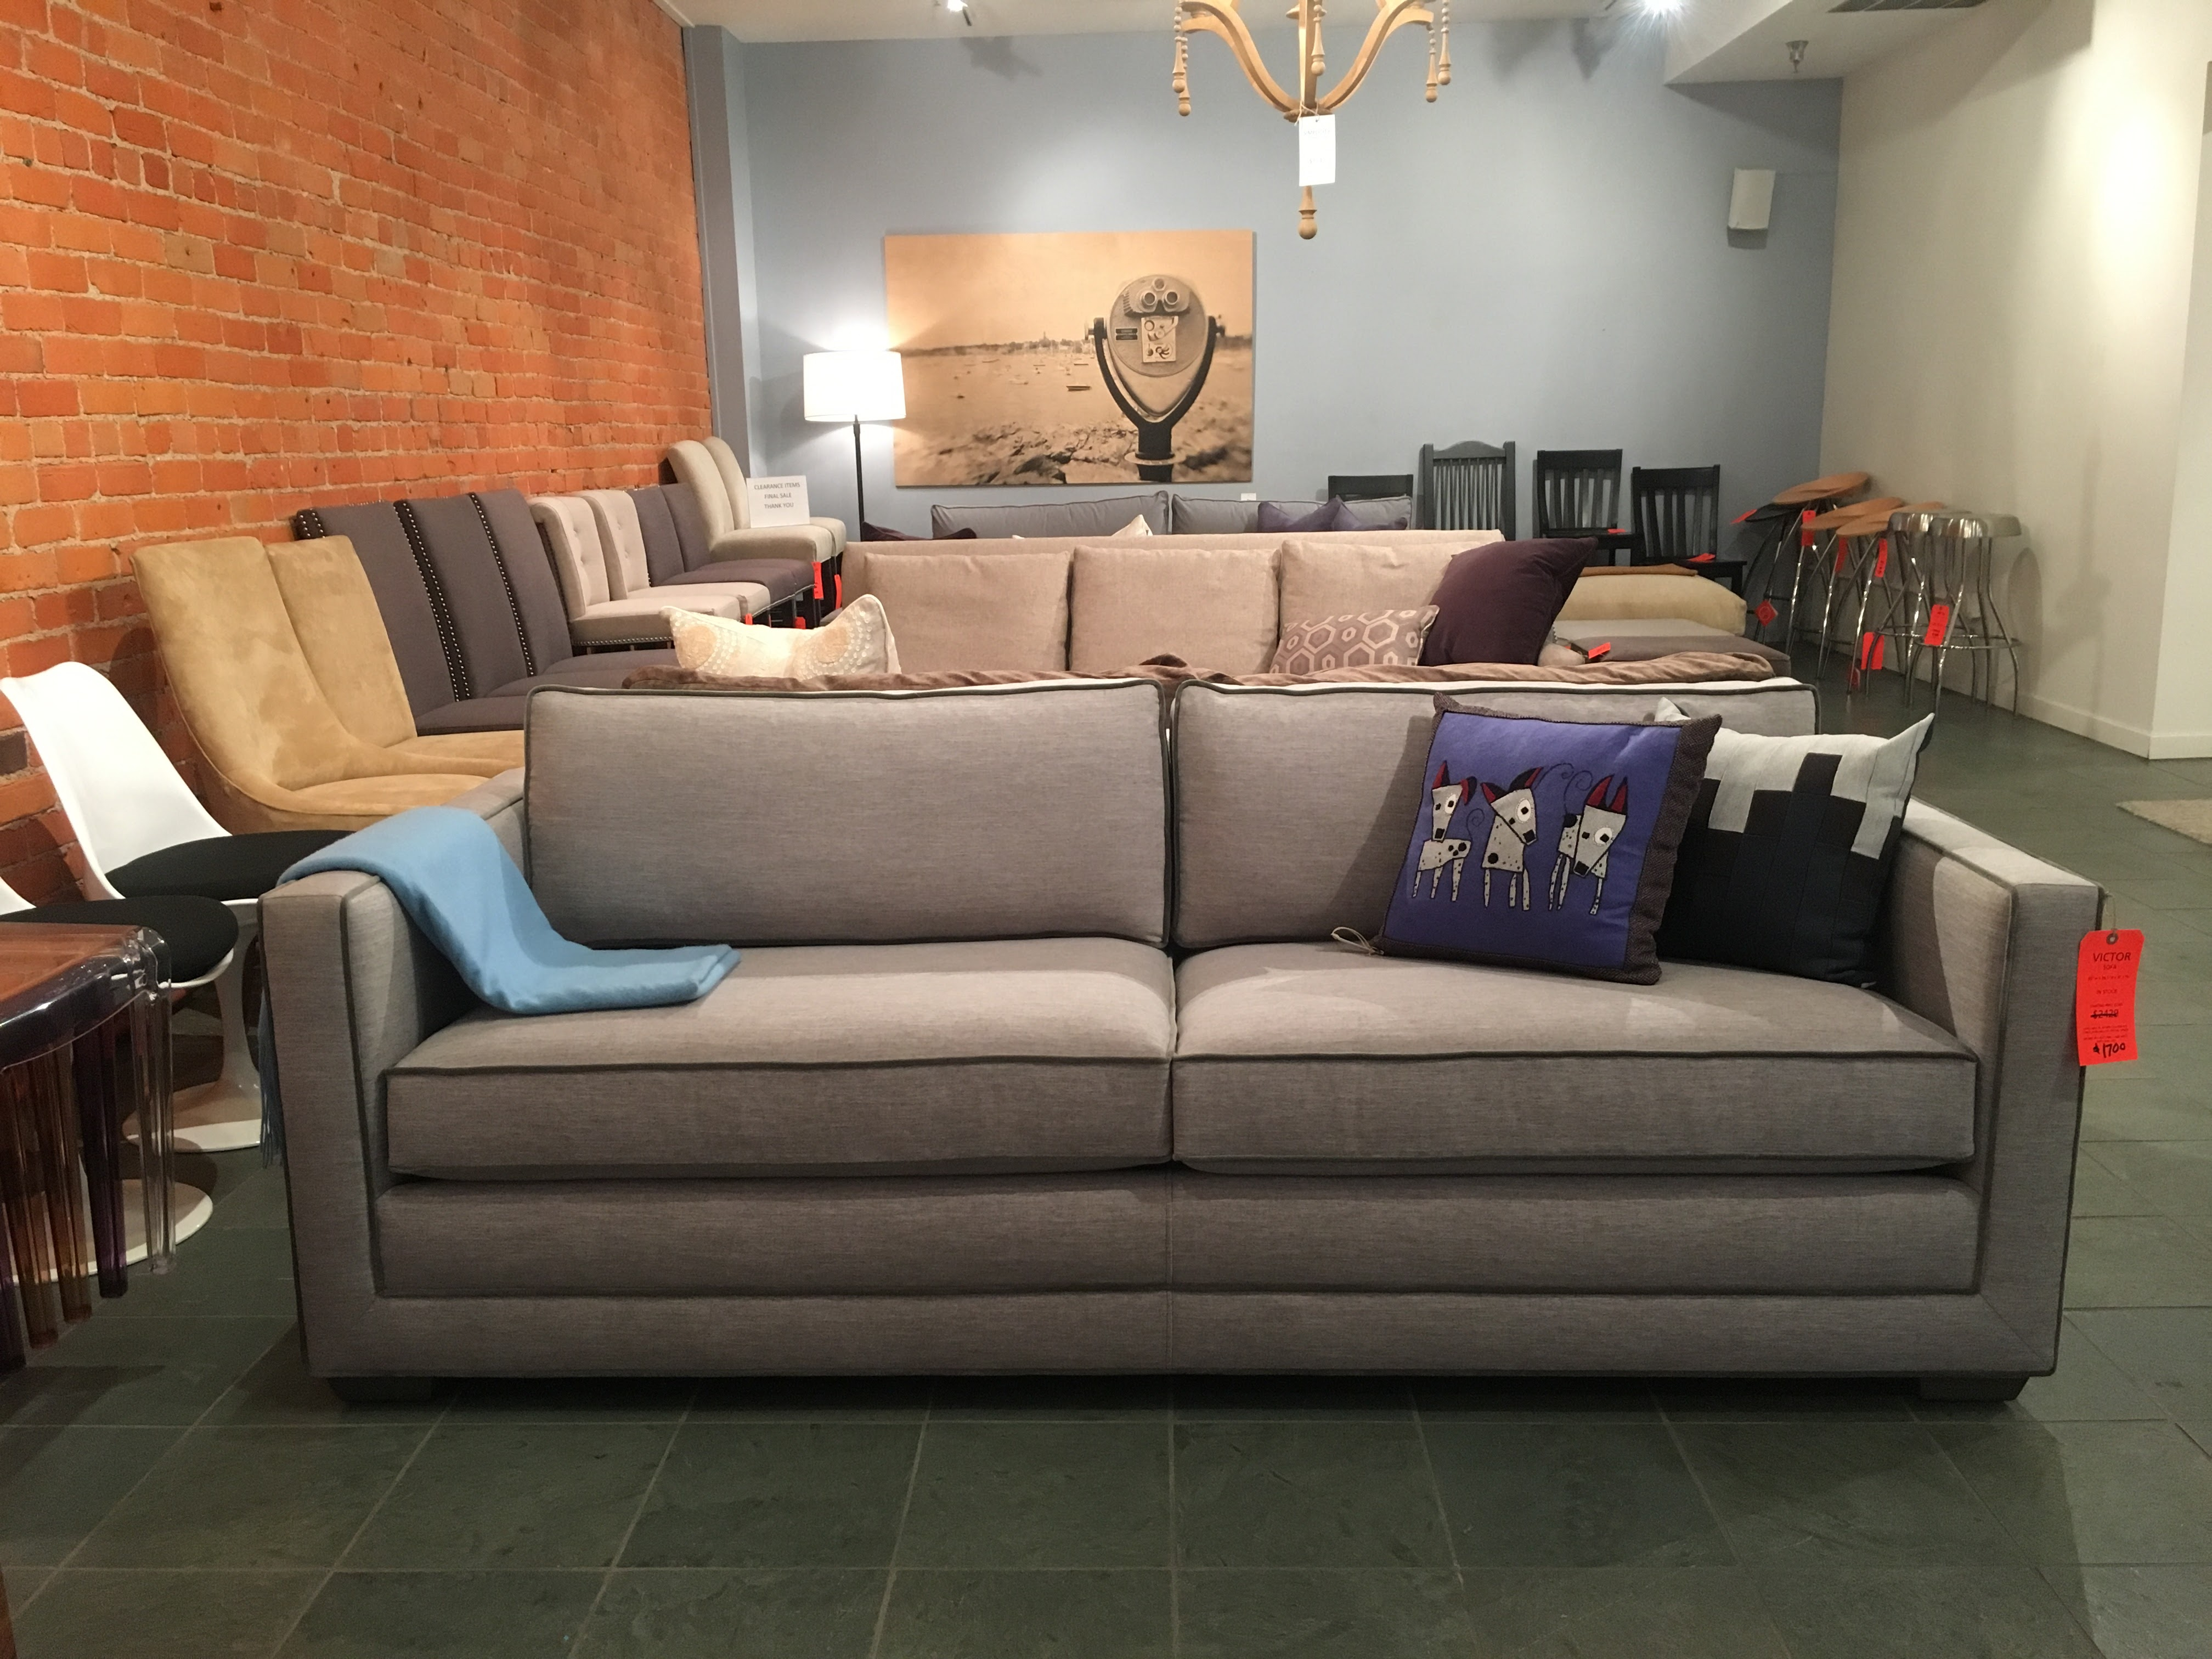 Tremendous Summer Clearance Sale Furniture Ann Arbor Sofa Three Chairs Pdpeps Interior Chair Design Pdpepsorg